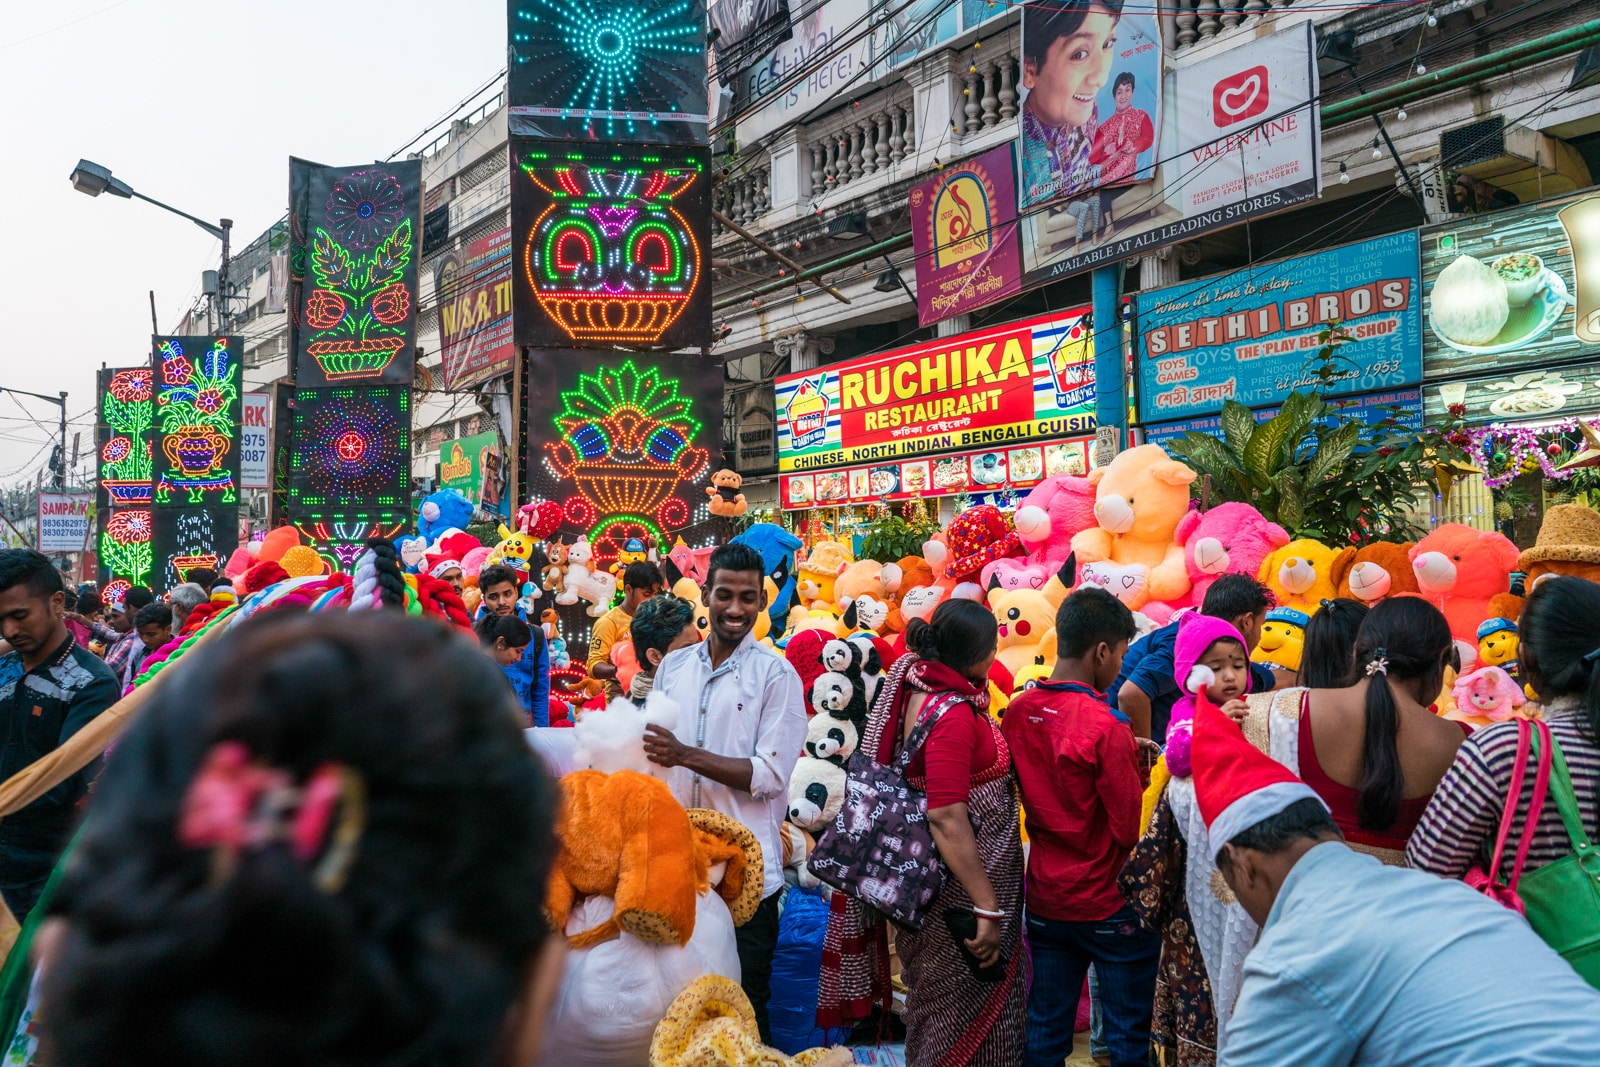 Reasons why Kolkata is my favorite Indian megacity - Crazy Christmas market with neon lights and stuffed animals - Lost With Purpose travel blog